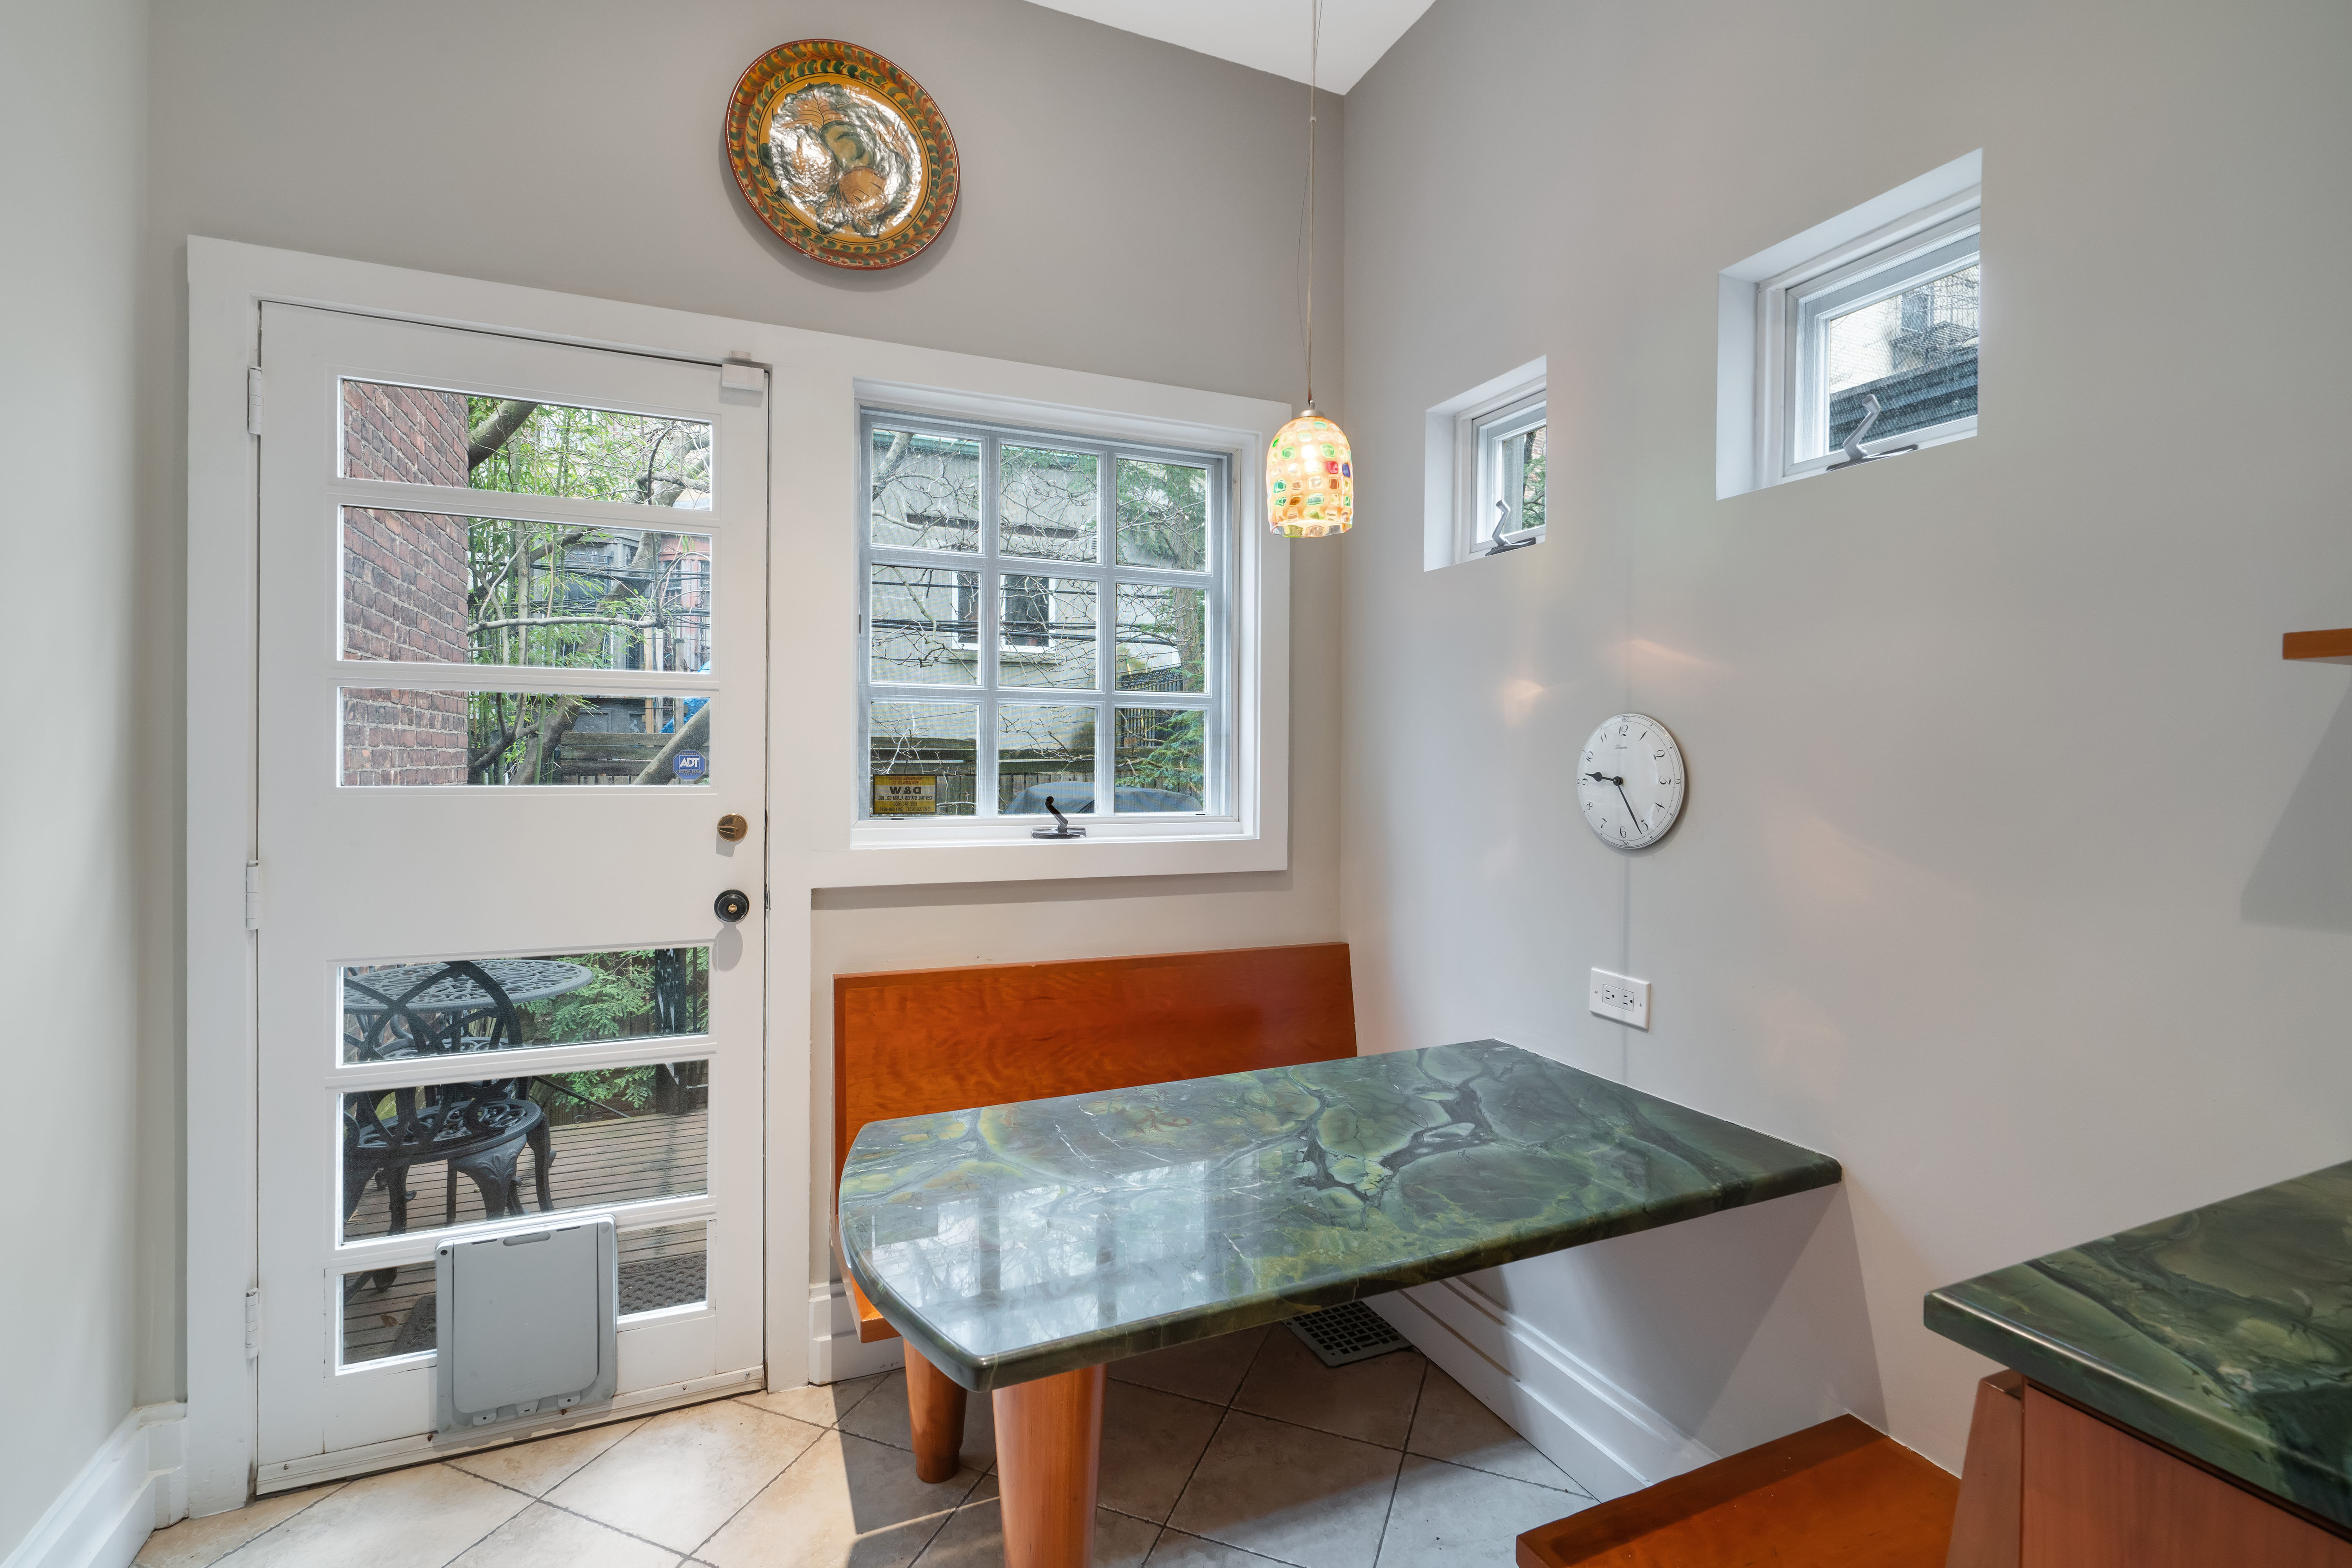 594 2nd St Photo 17 - BROWNSTONER-LISTING-47512a55ccfbbeb19b0a8fb315f62163